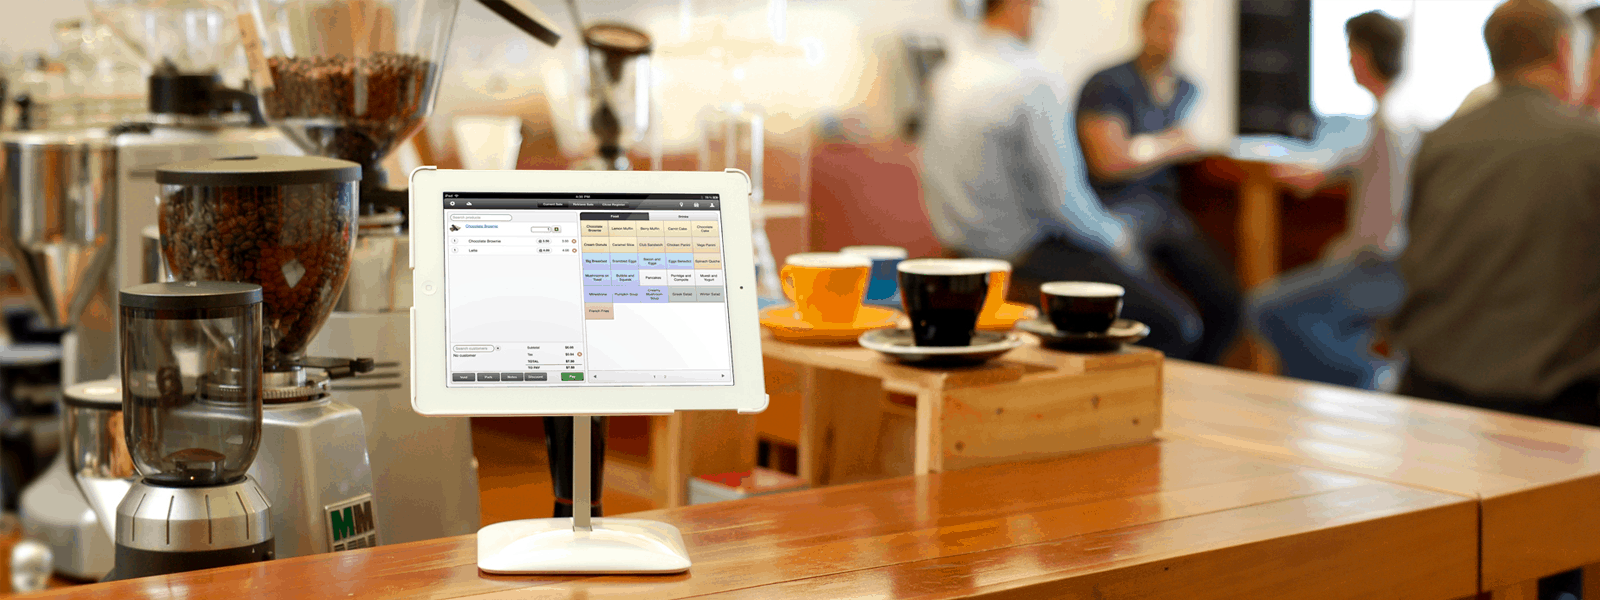 Best Restaurant Pos Systems 2018 Expert Reviews Amp Guide